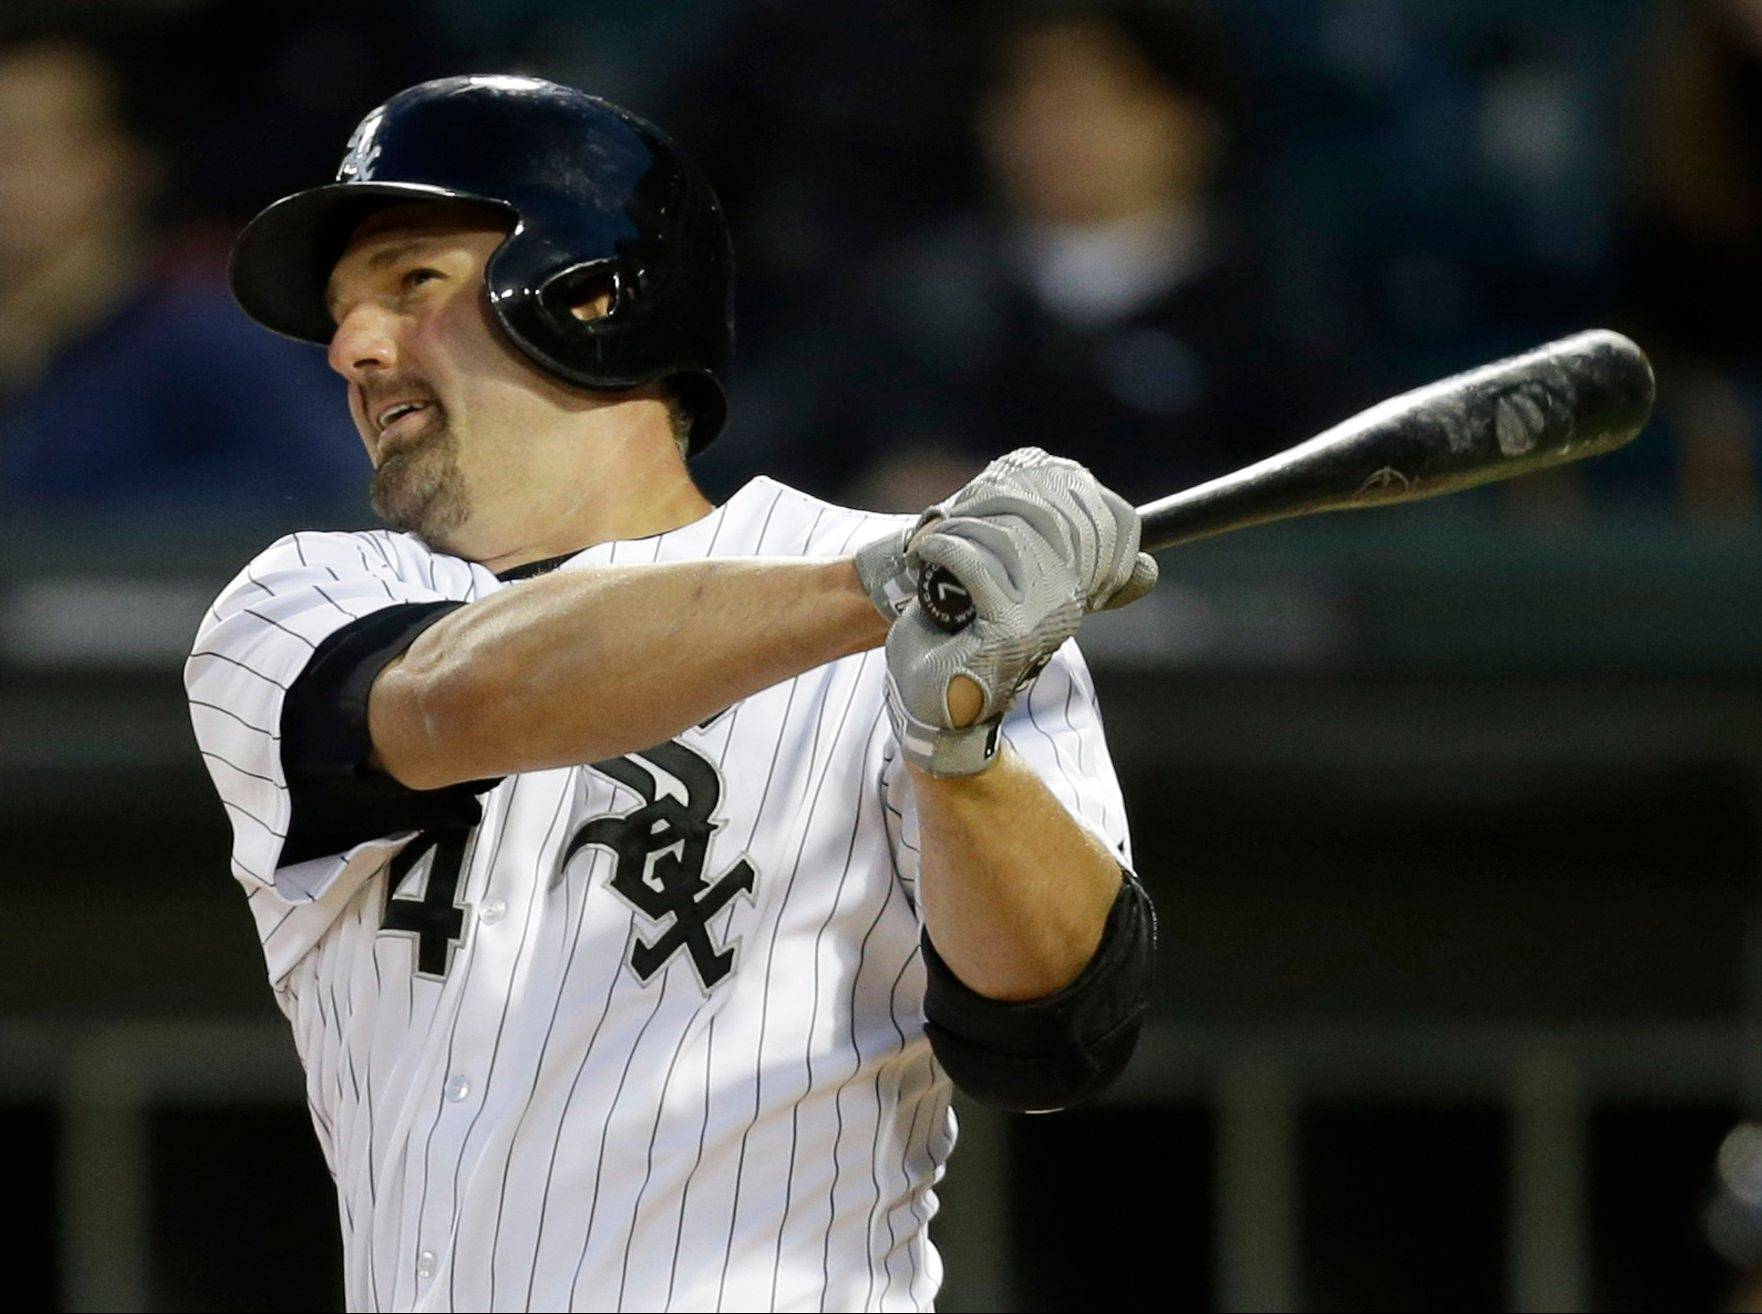 Paul Konerko hits a single during the fifth inning of an interleague baseball game against the Miami Marlins, Friday, May 24, 2013, in Chicago.